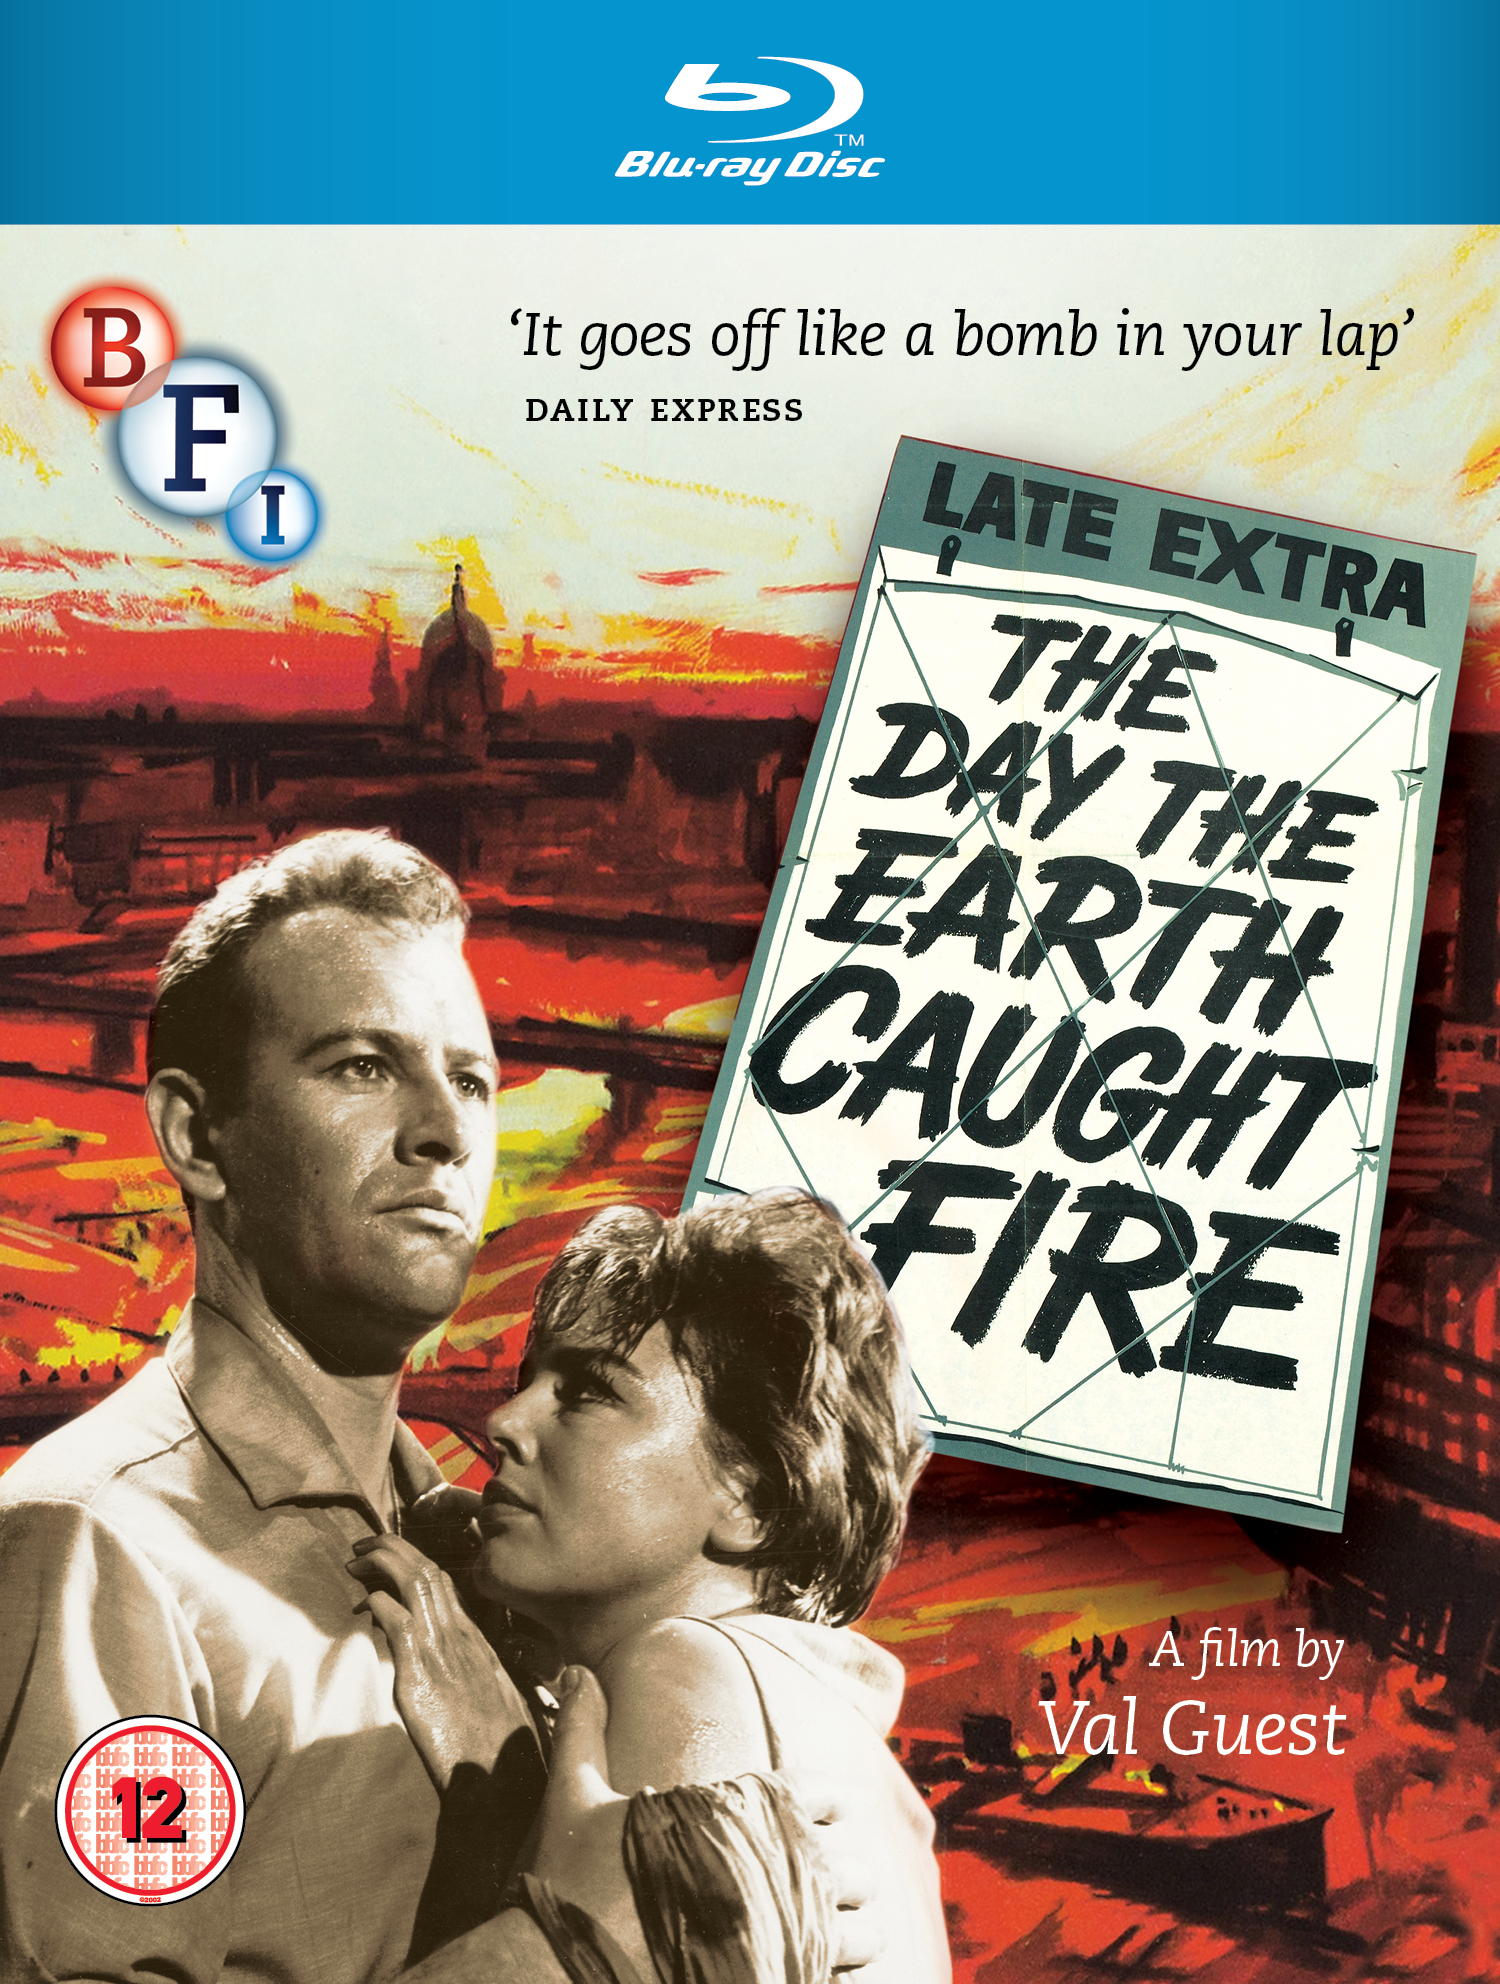 Buy The Day the Earth Caught Fire (Blu-ray) on DVD and Blu Ray